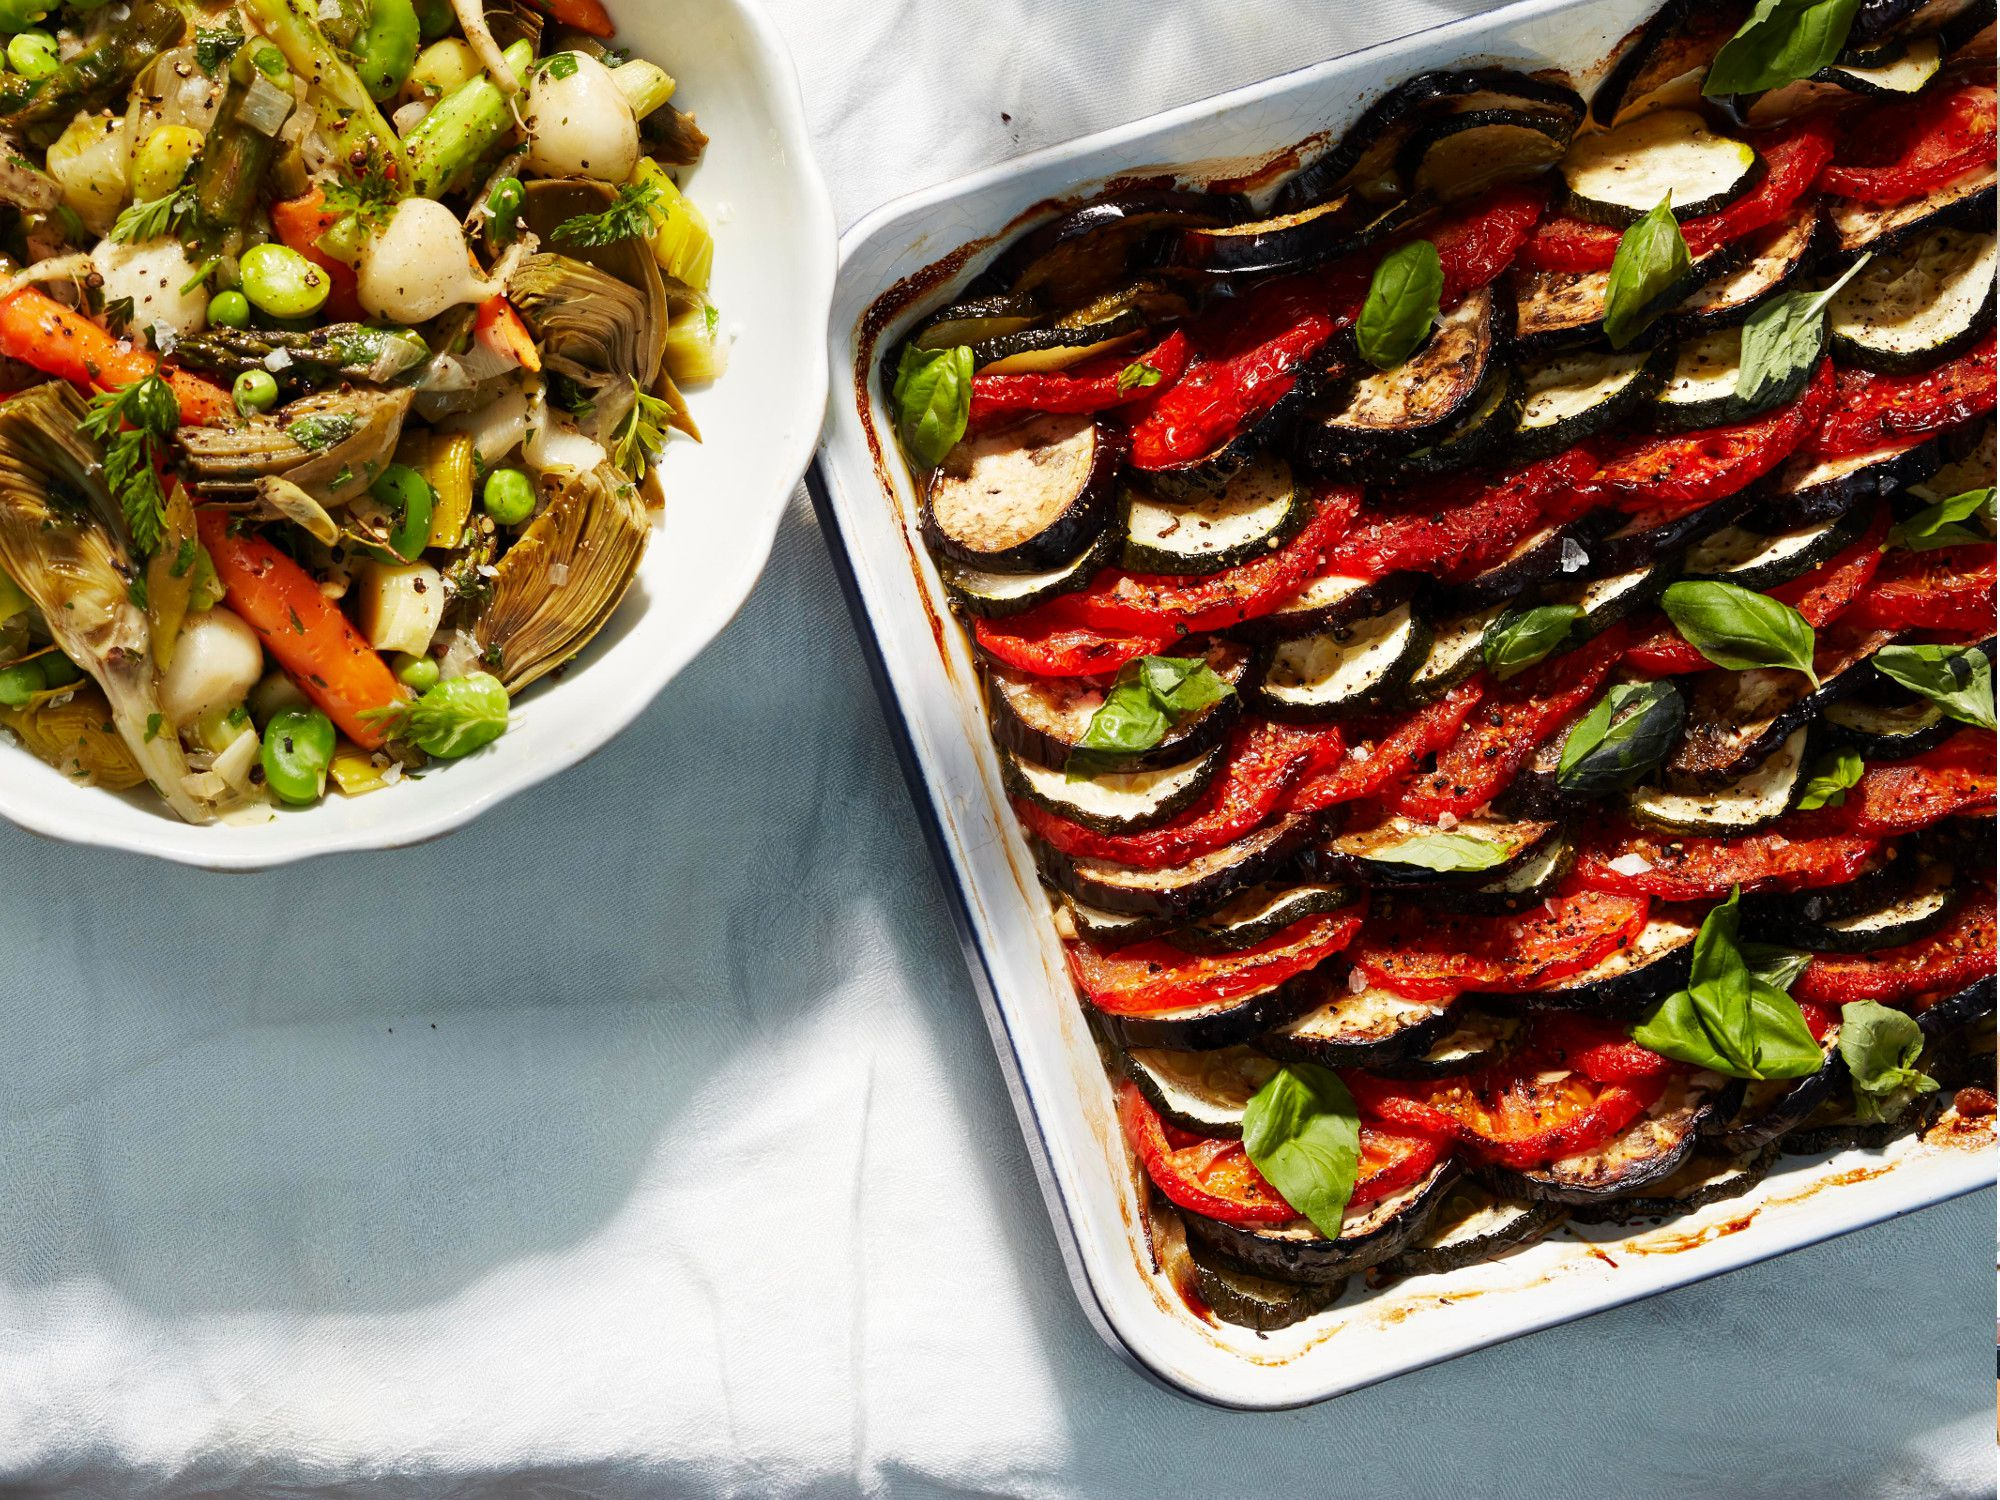 "A tian is a type of gratin, typically vegetables baked in an earthenware dish. (The word ""tian"" also refers to the earthenware dish itself.) This classic Provençal version is made with alternating rows of sliced zucchini, eggplant, and tomato. The flavors meld as the vegetables cook together, somewhat like ratatouille. Seasoned simply with thyme, garlic, and good fruity olive oil, the dish is best served at room temperature. Lulu insists it tastes even better made a day in advance. Get the recipe for <a href=""http://www.saveur.com/provencal-vegetable-gratin-tian-recipe"">Provençal Vegetable Tian</a>"